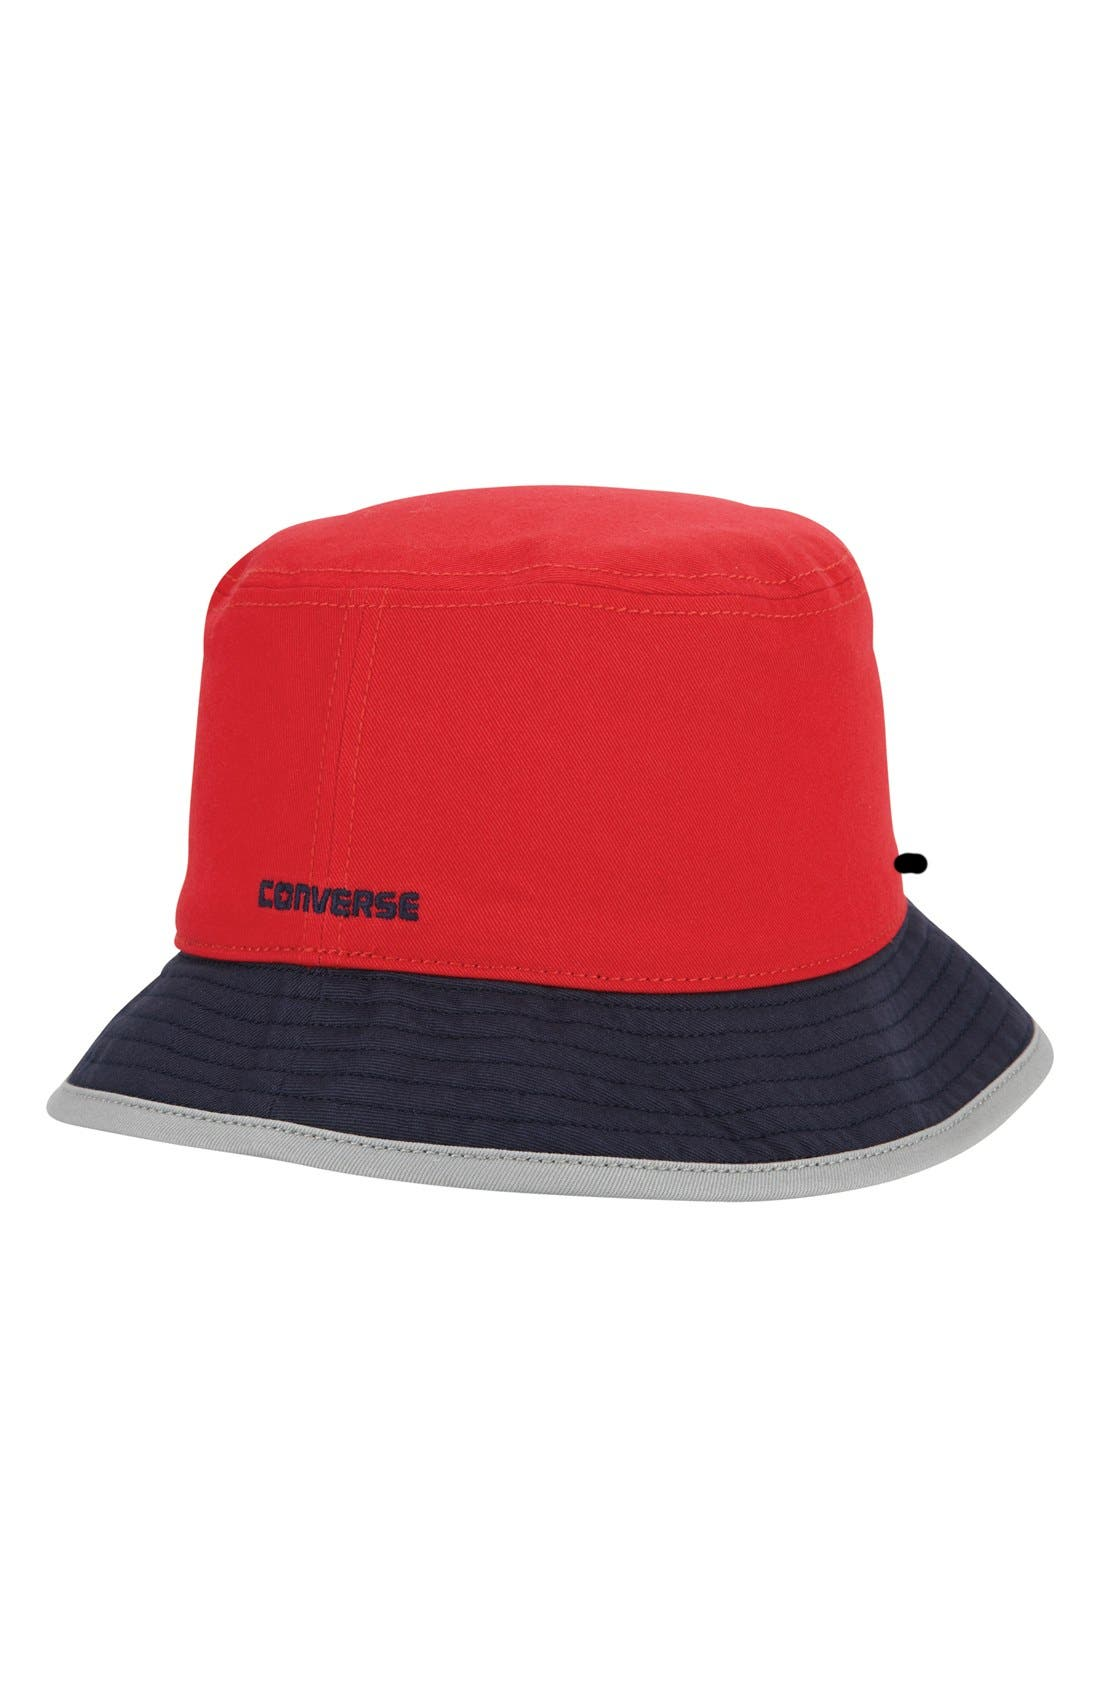 Main Image - Converse Reversible Bucket Hat